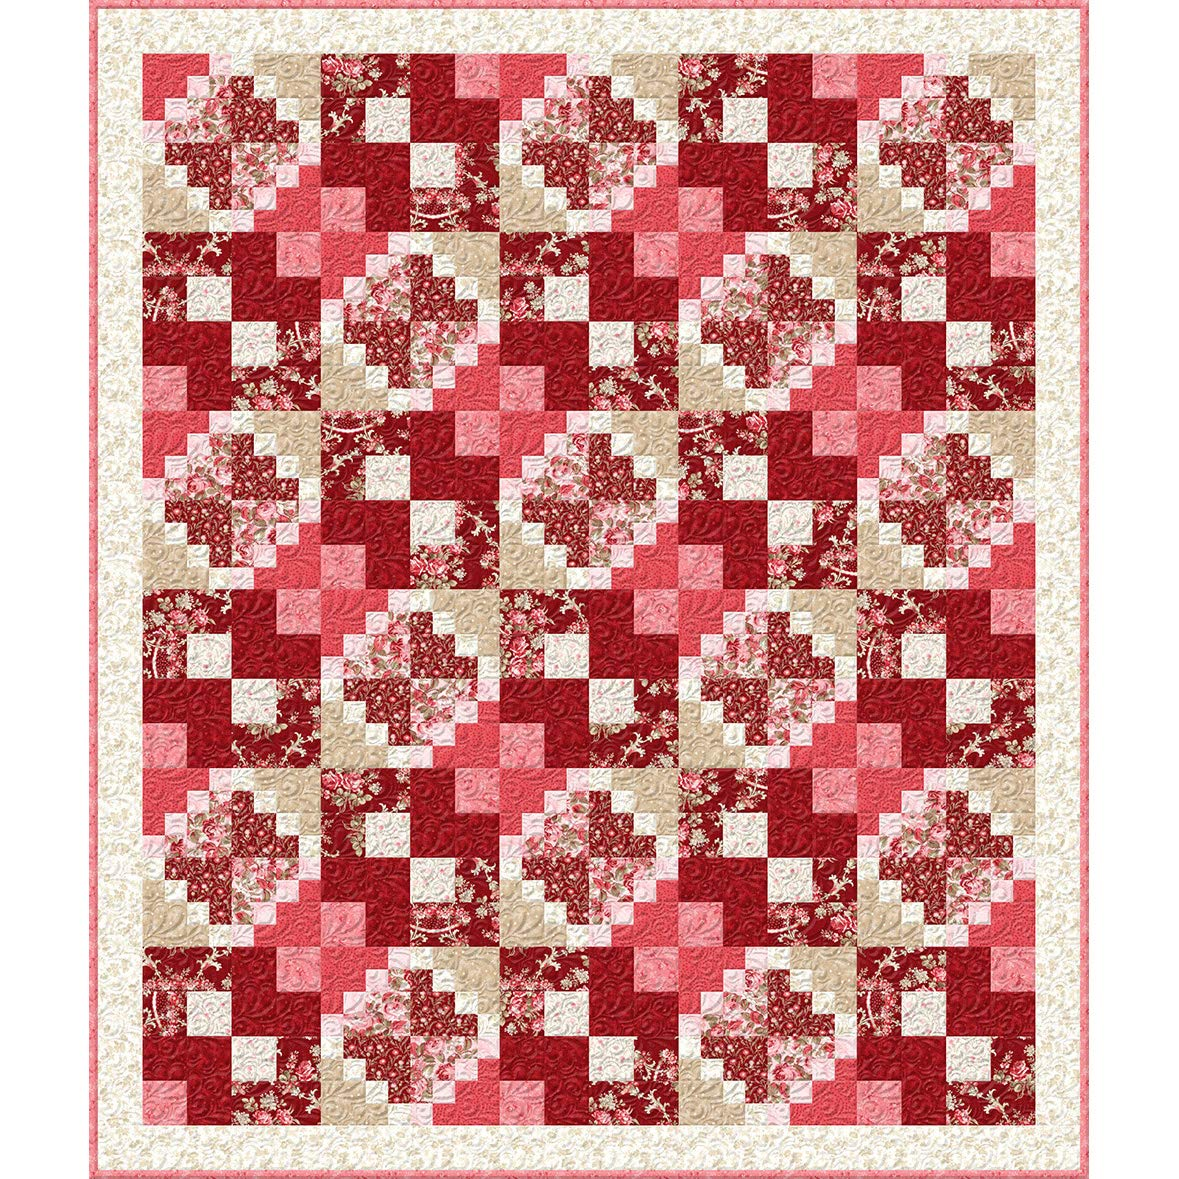 Wilmington Prints Rhapsody in Reds Kaye England Floral Patches Throw Quilt Kit by Wilmington Prints